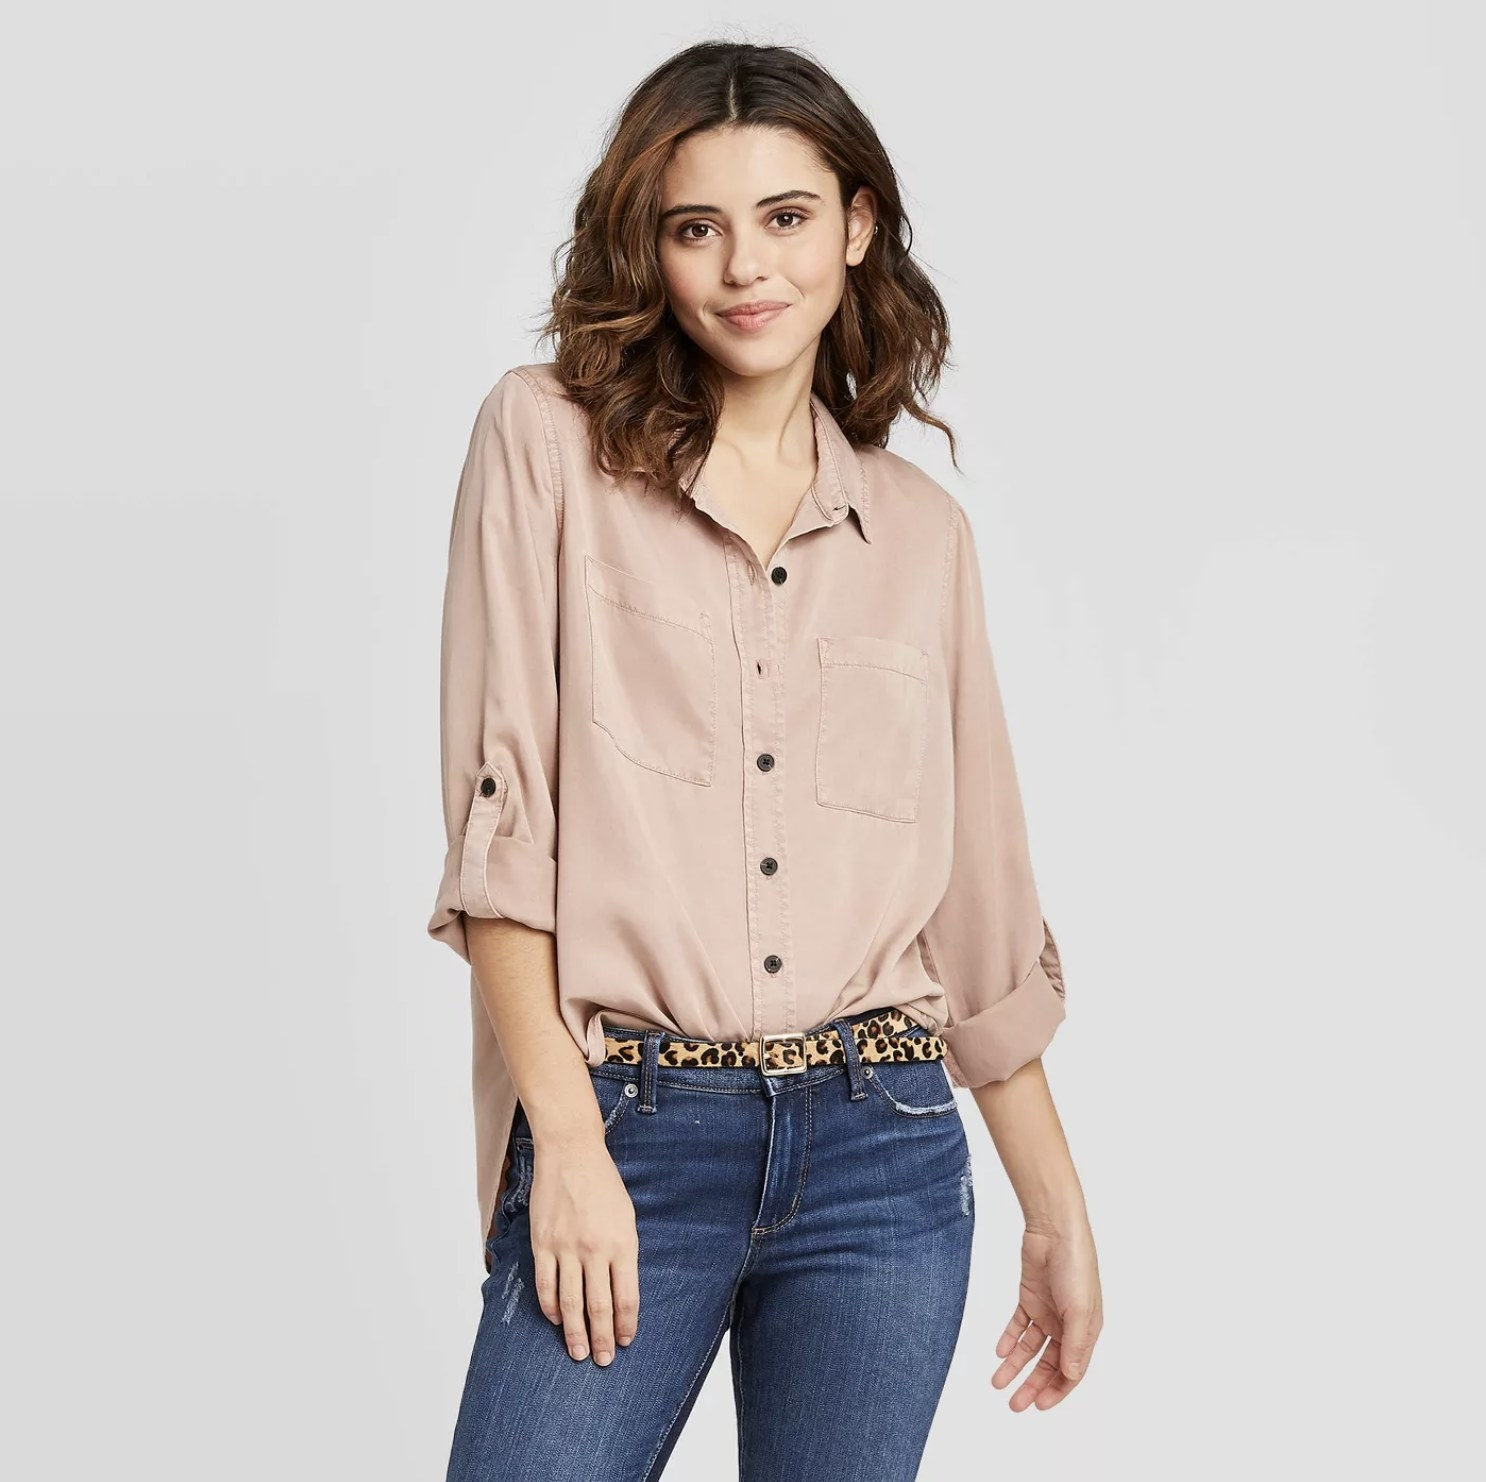 Model is wearing a mauve long-sleeve button-down shirt with dark blue jeans and a cheetah print belt